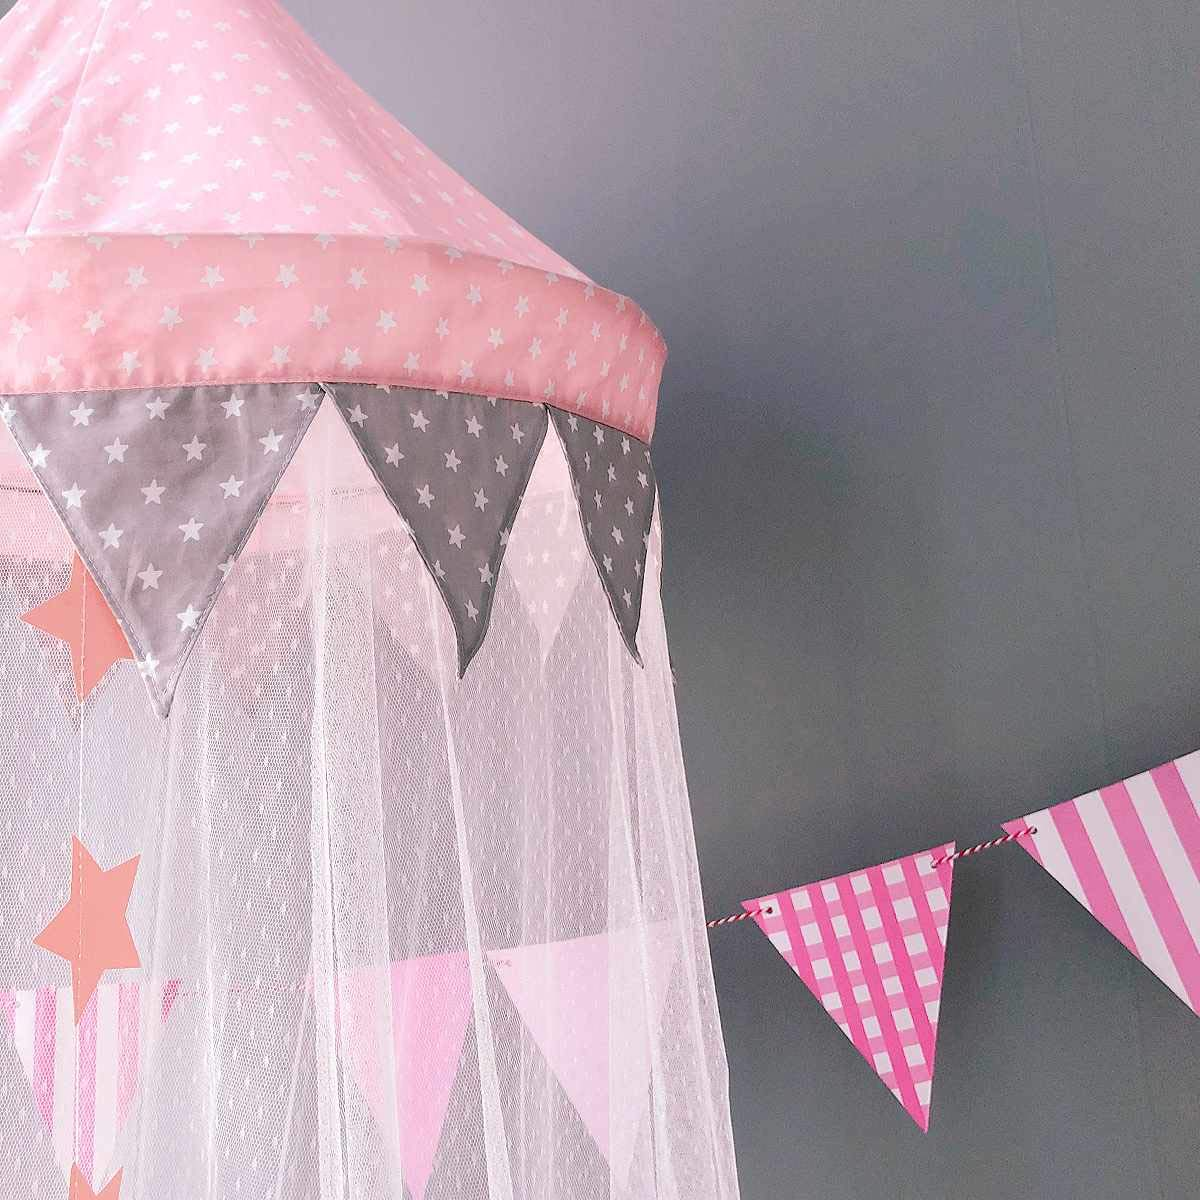 Dix-Rainbow Bed Canopy Mosquito Net Baby Crib Kids Twin Full Queen Size Bed, Reading Nook for Girls and Boys, Princess Lace Round Dome Fairy Netting Curtains, Kids Play Tent Castle Games House - Pink by Dix-Rainbow (Image #3)